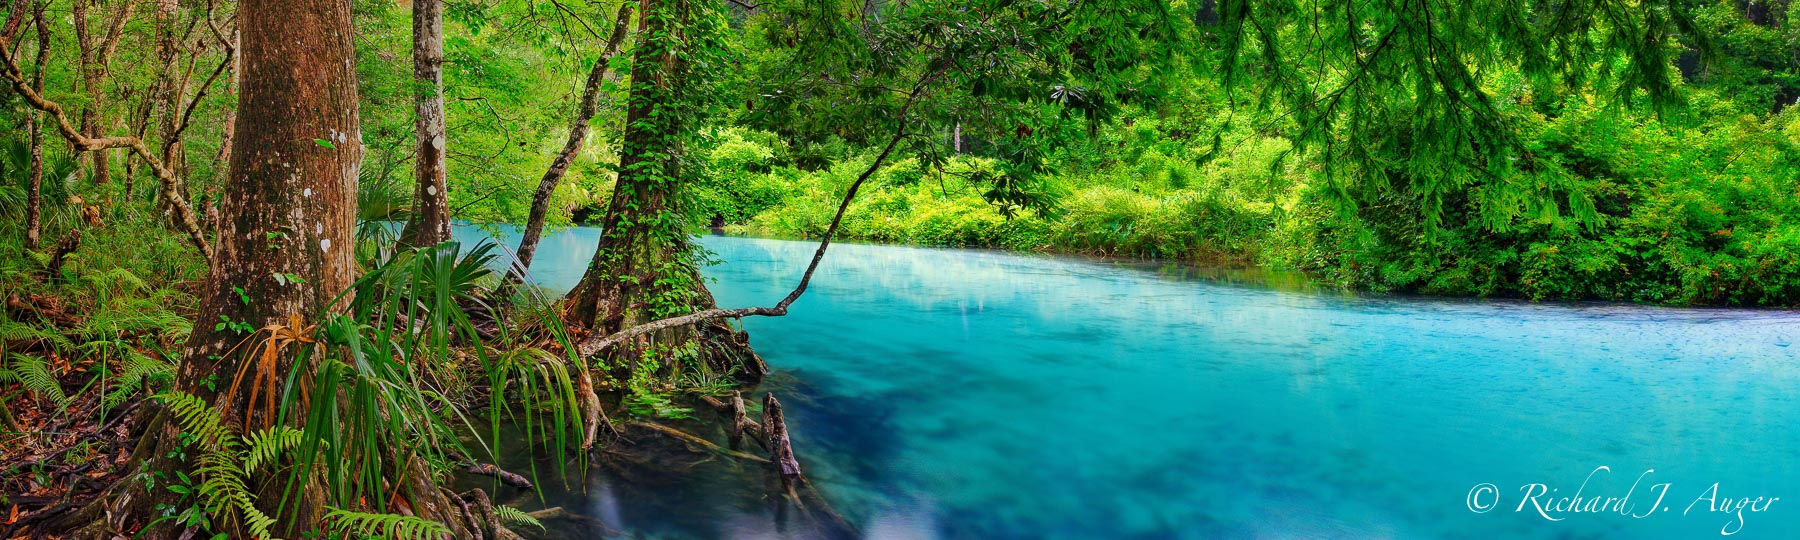 Weeki Wachee, Spring, River, Florida, water, cypress, photograph, canvas, photographer, Richard Auger